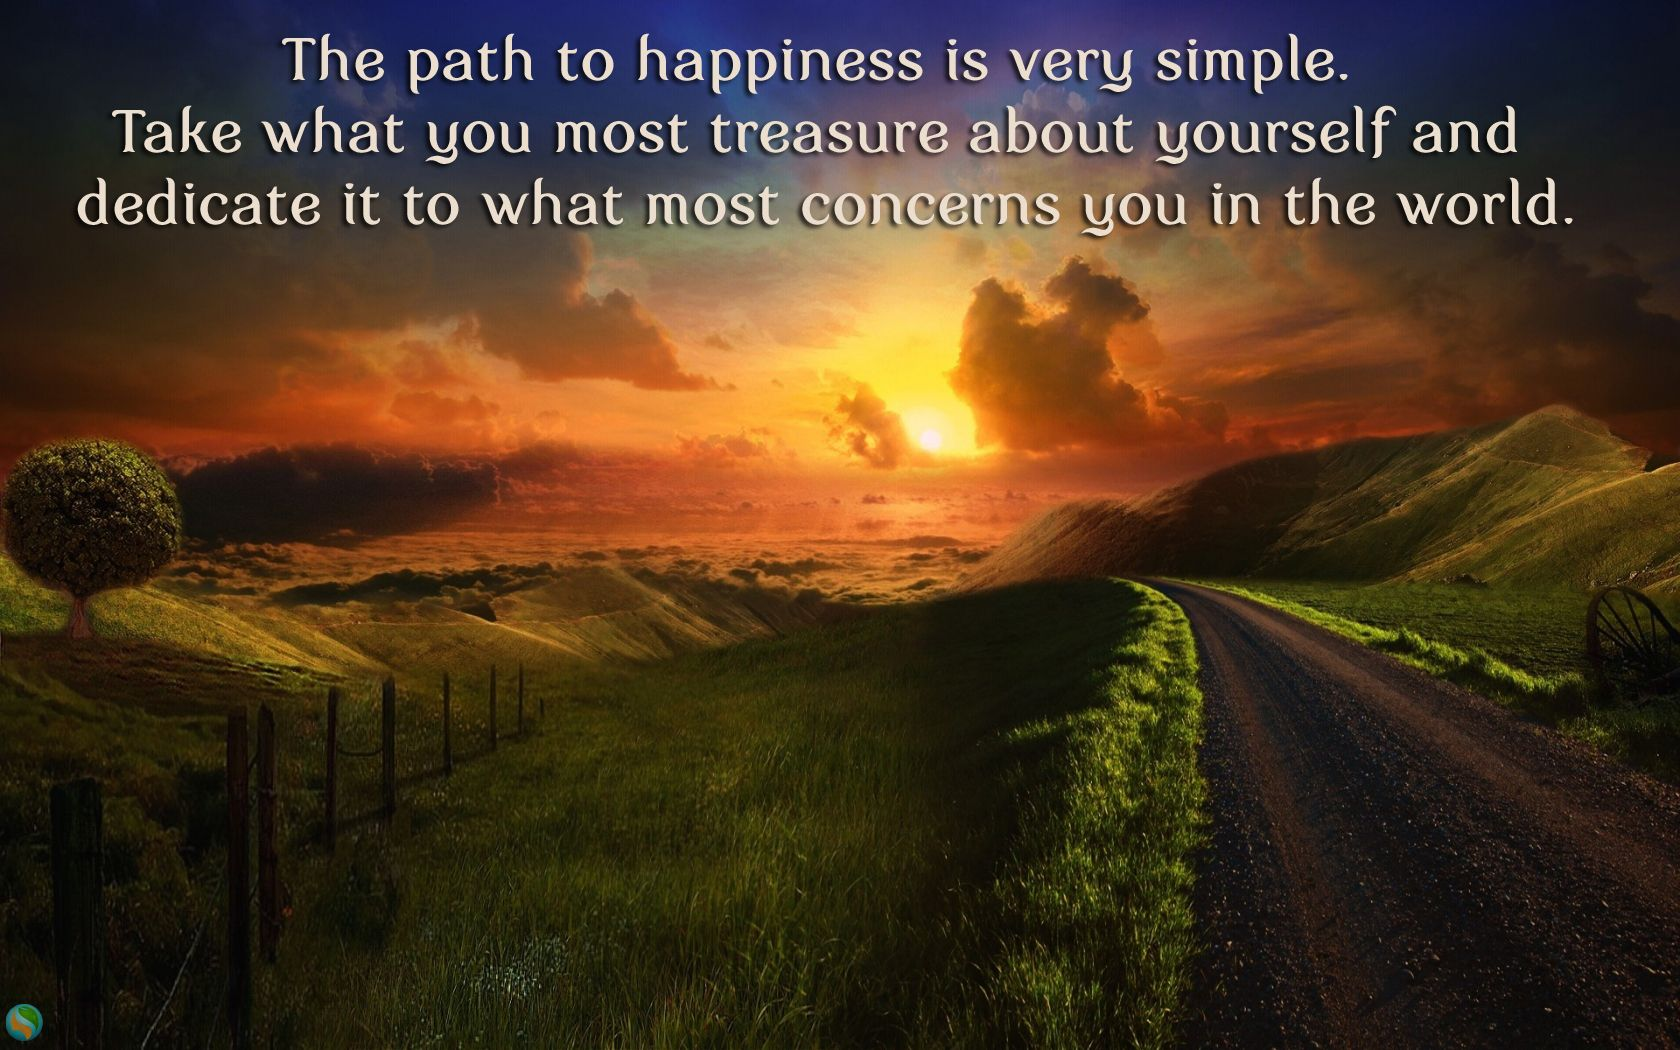 The path to happiness is very simple. Take what you most treasure about yourself and dedicate it to what most concerns you in the world.